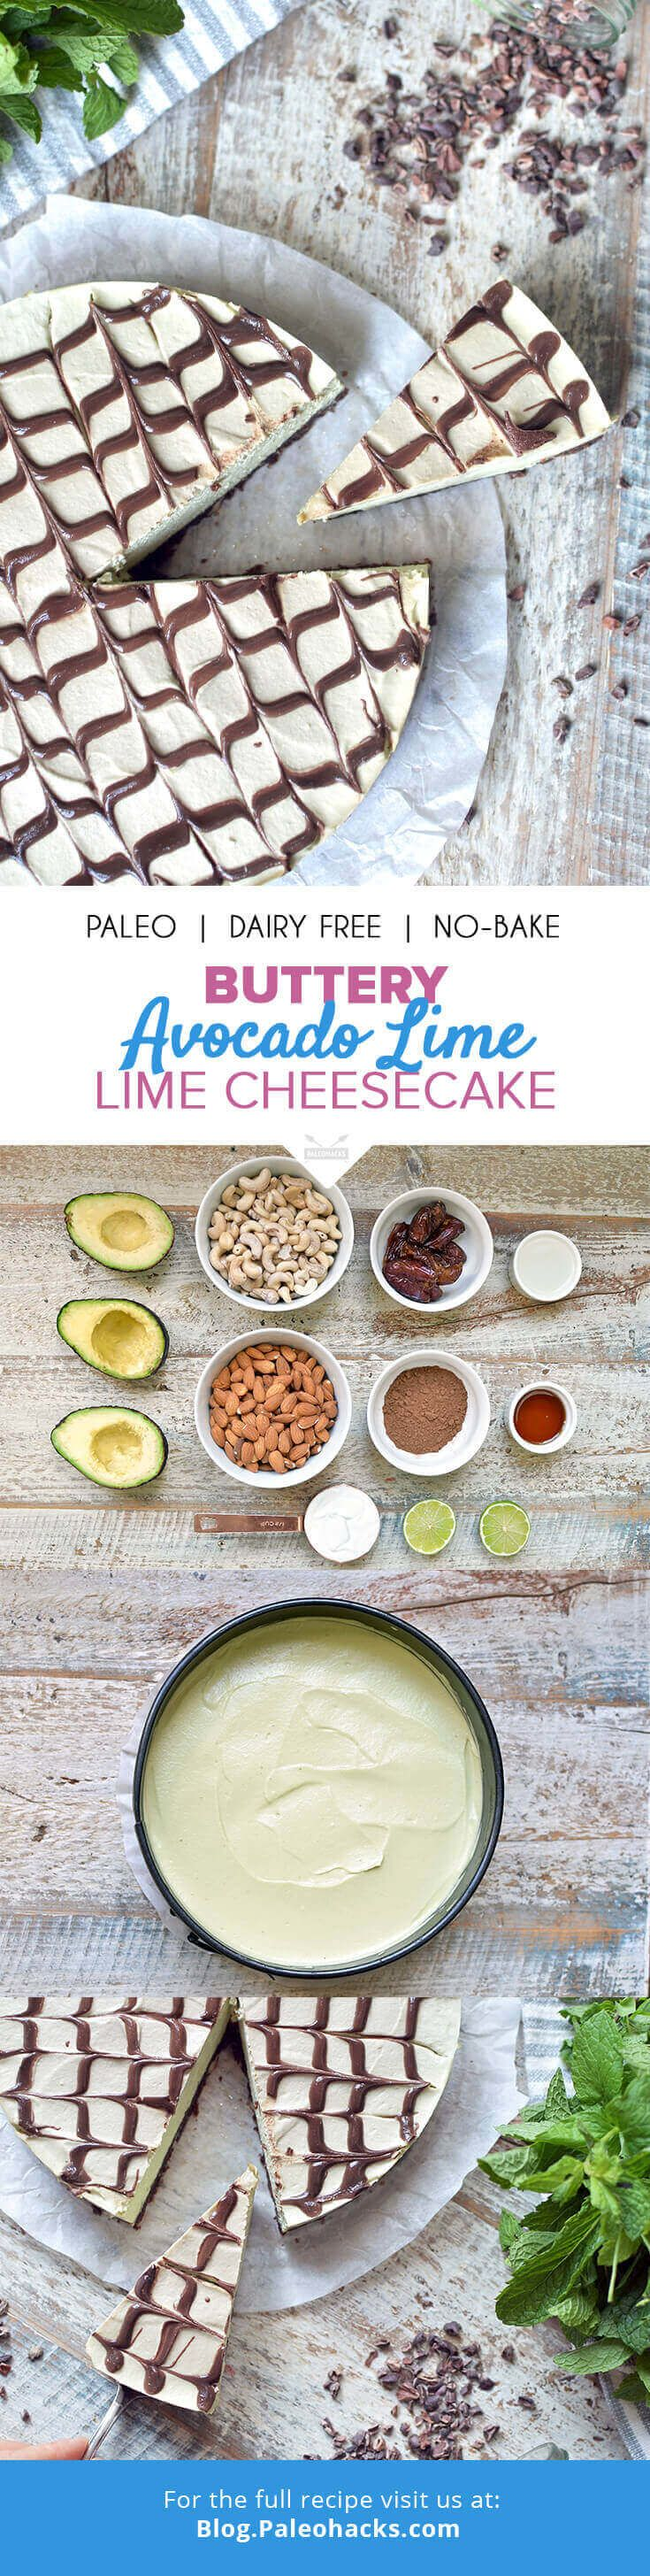 Key Lime Oil Whole Foods